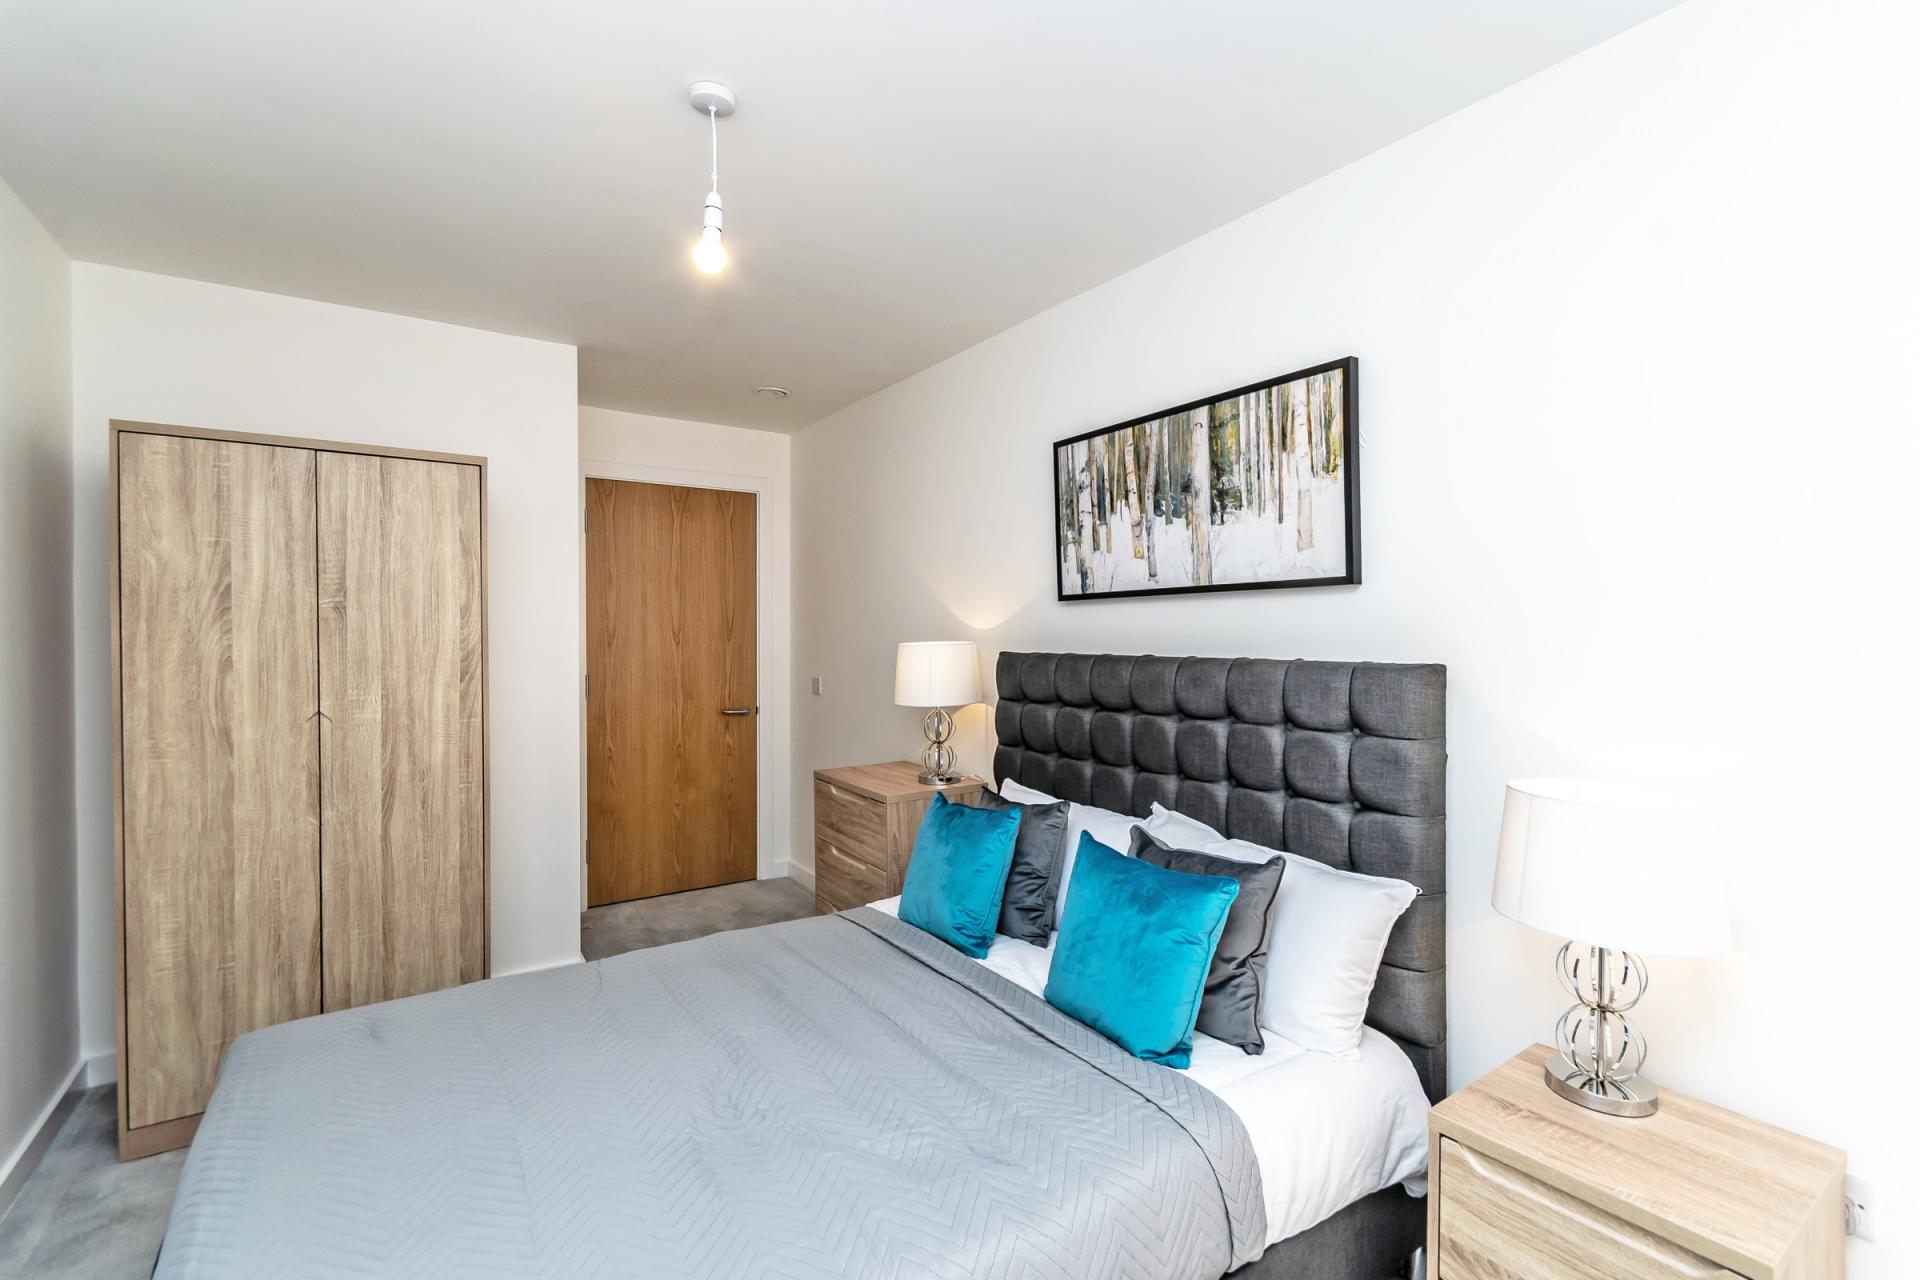 Cosy bed at Halo House Serviced Apartments, Green Quarter, Manchester - Citybase Apartments